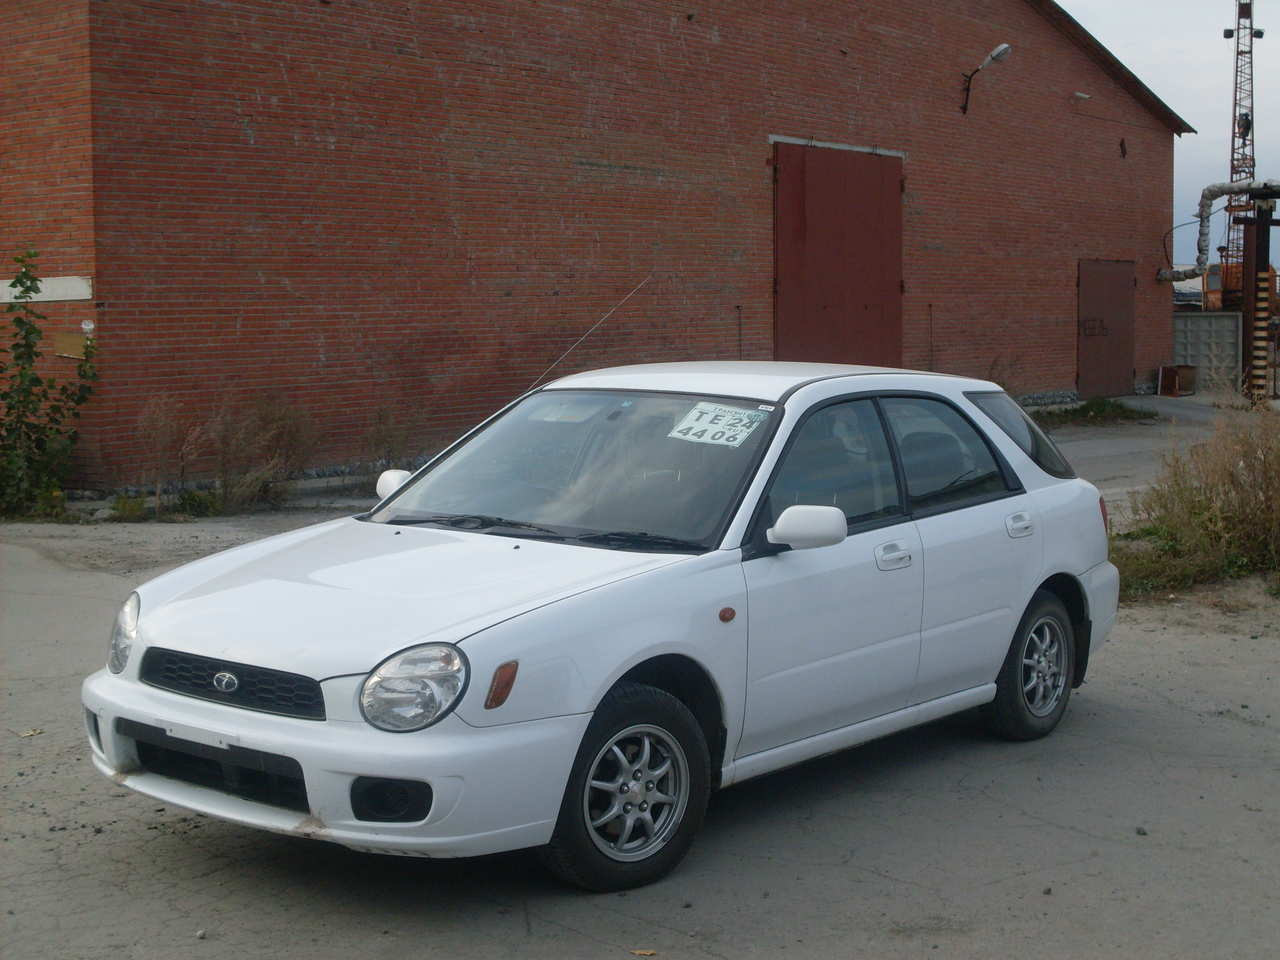 used 2000 subaru impreza wagon photos 1500cc gasoline automatic for sale. Black Bedroom Furniture Sets. Home Design Ideas